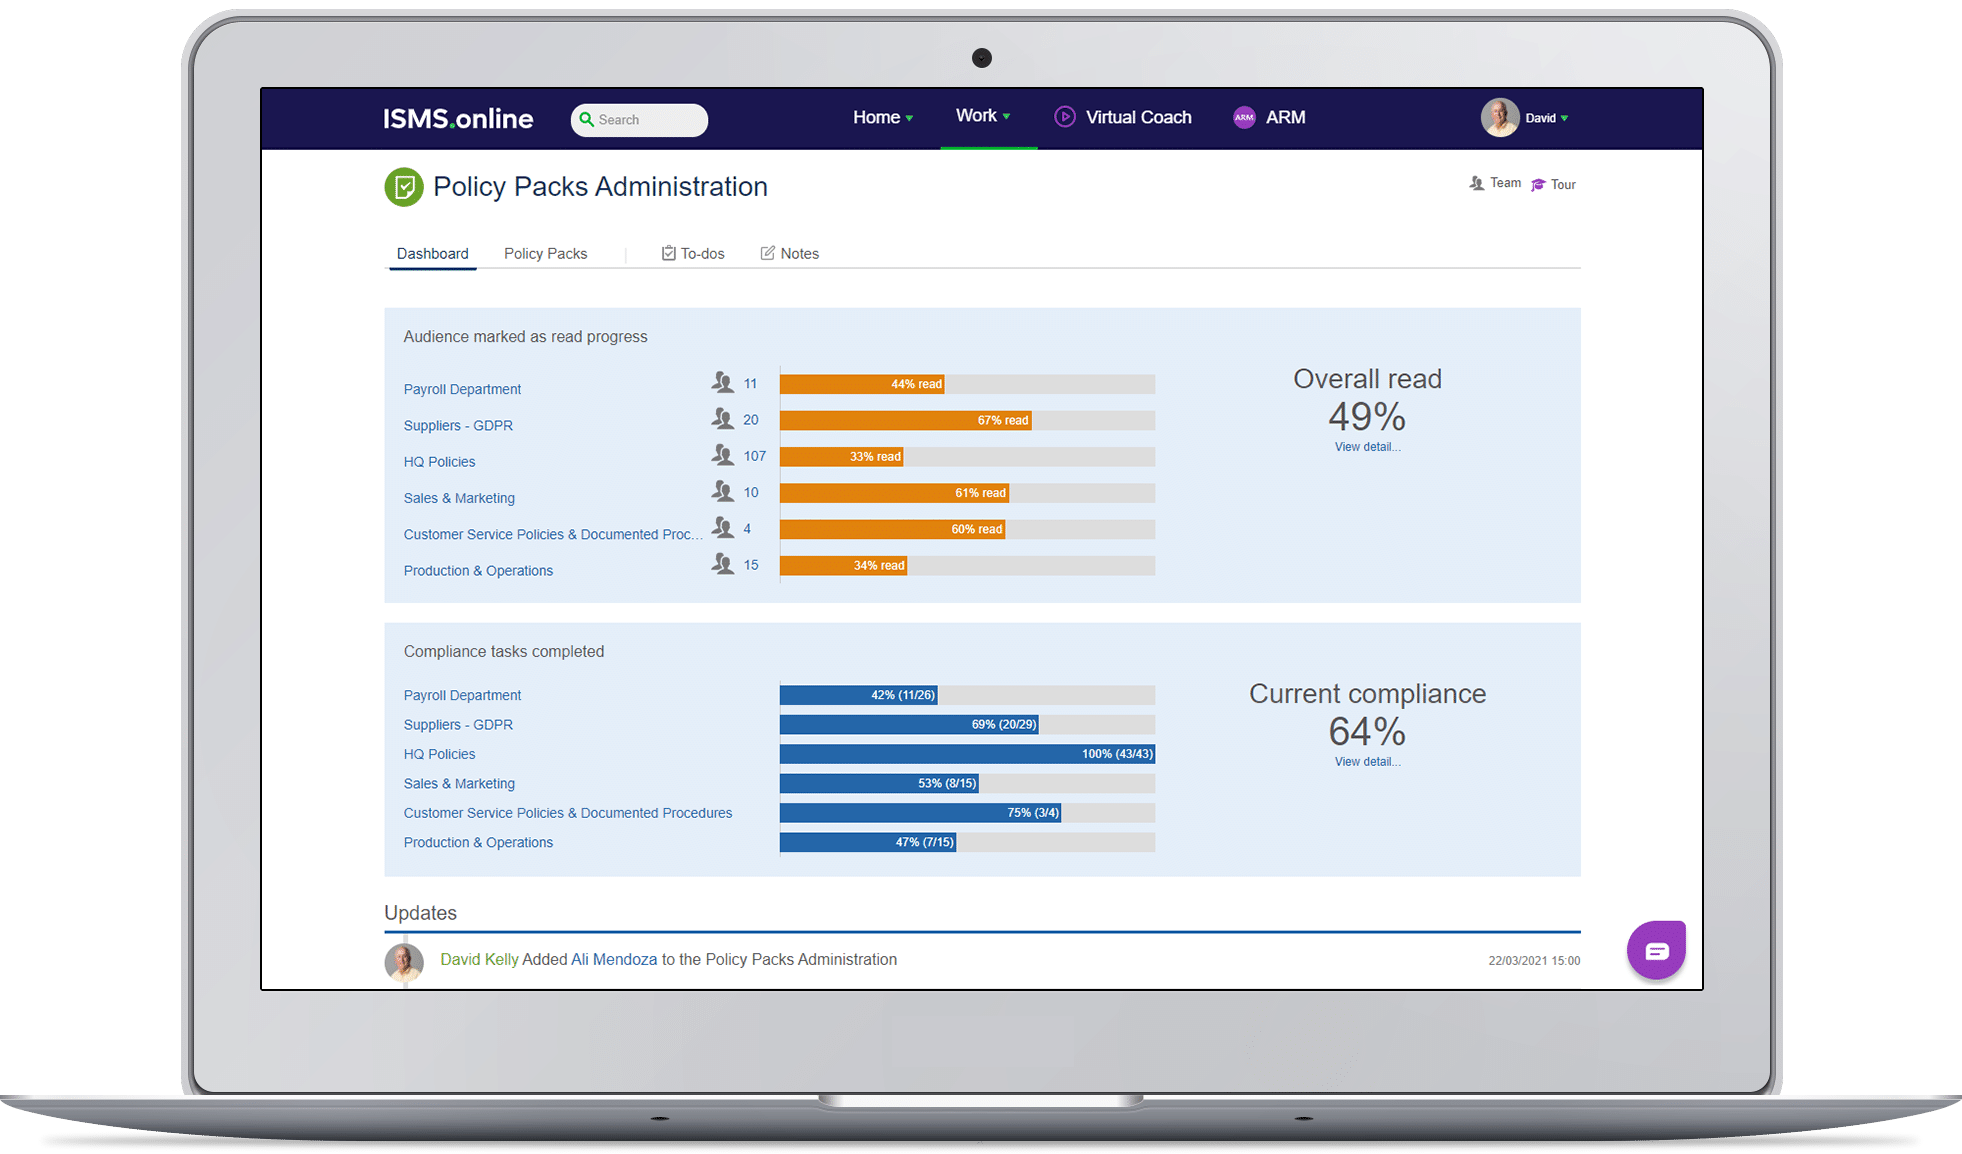 Policy packs administration dashboard